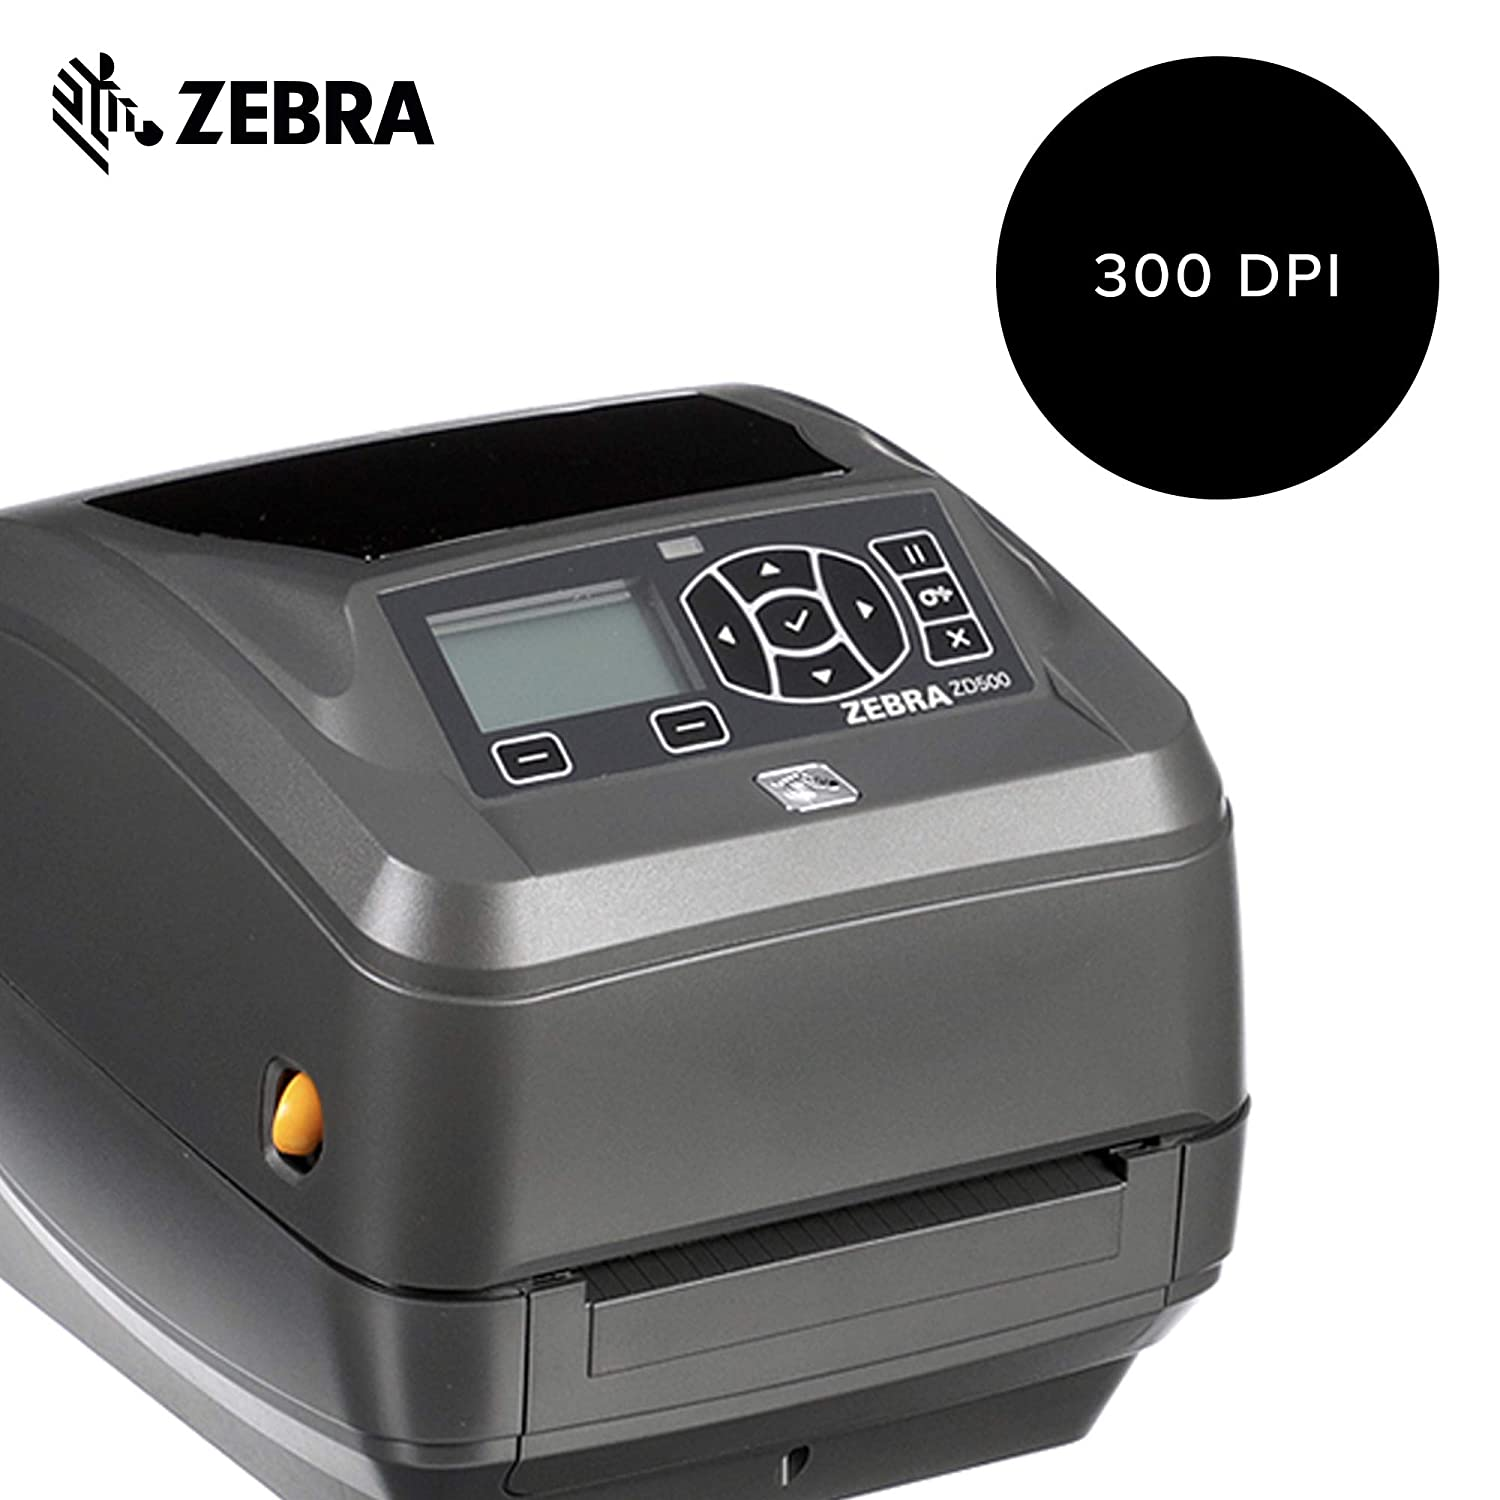 Zebra - ZD500t Thermal Transfer Desktop Printer for Labels and Barcodes -  Print Width 4 in - 300 dpi - Interface: Ethernet, Parallel, Serial, USB -